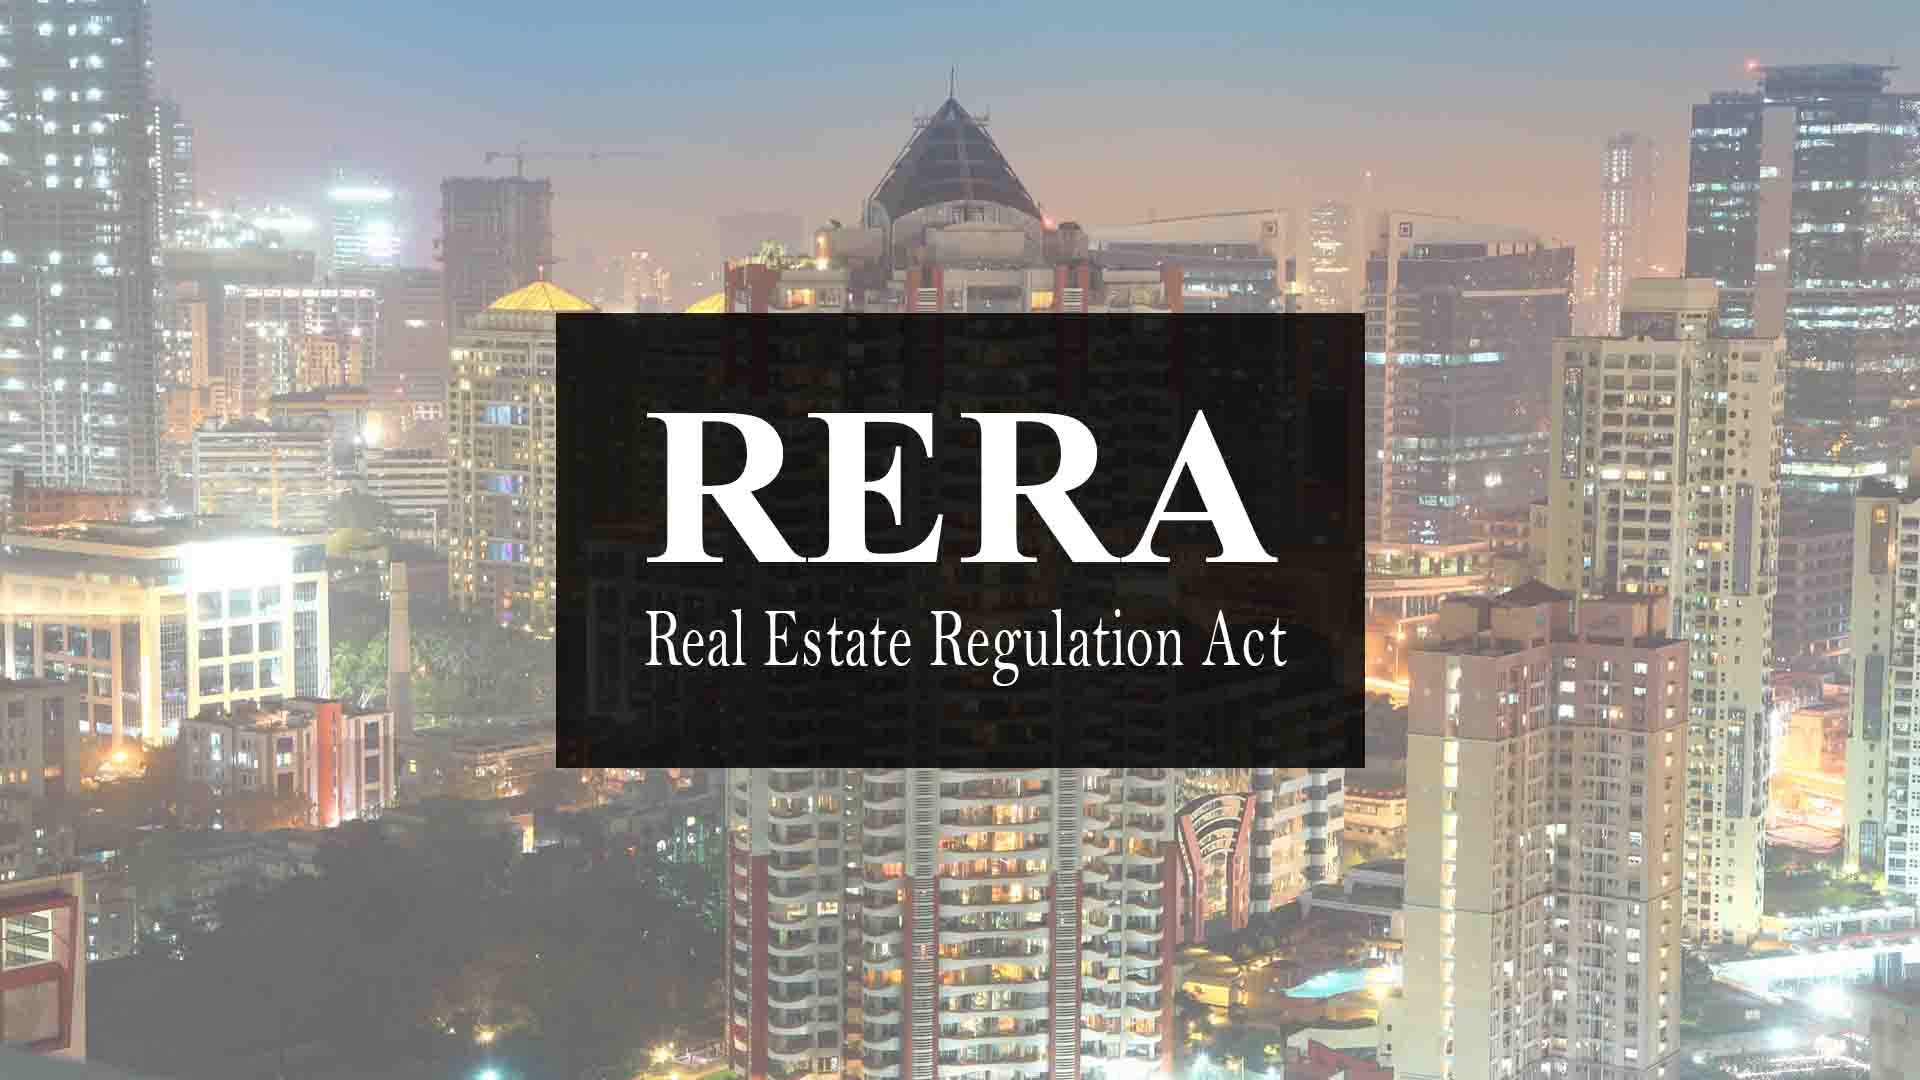 15 Out Of 29 States Have Complied With The RERA Deadline